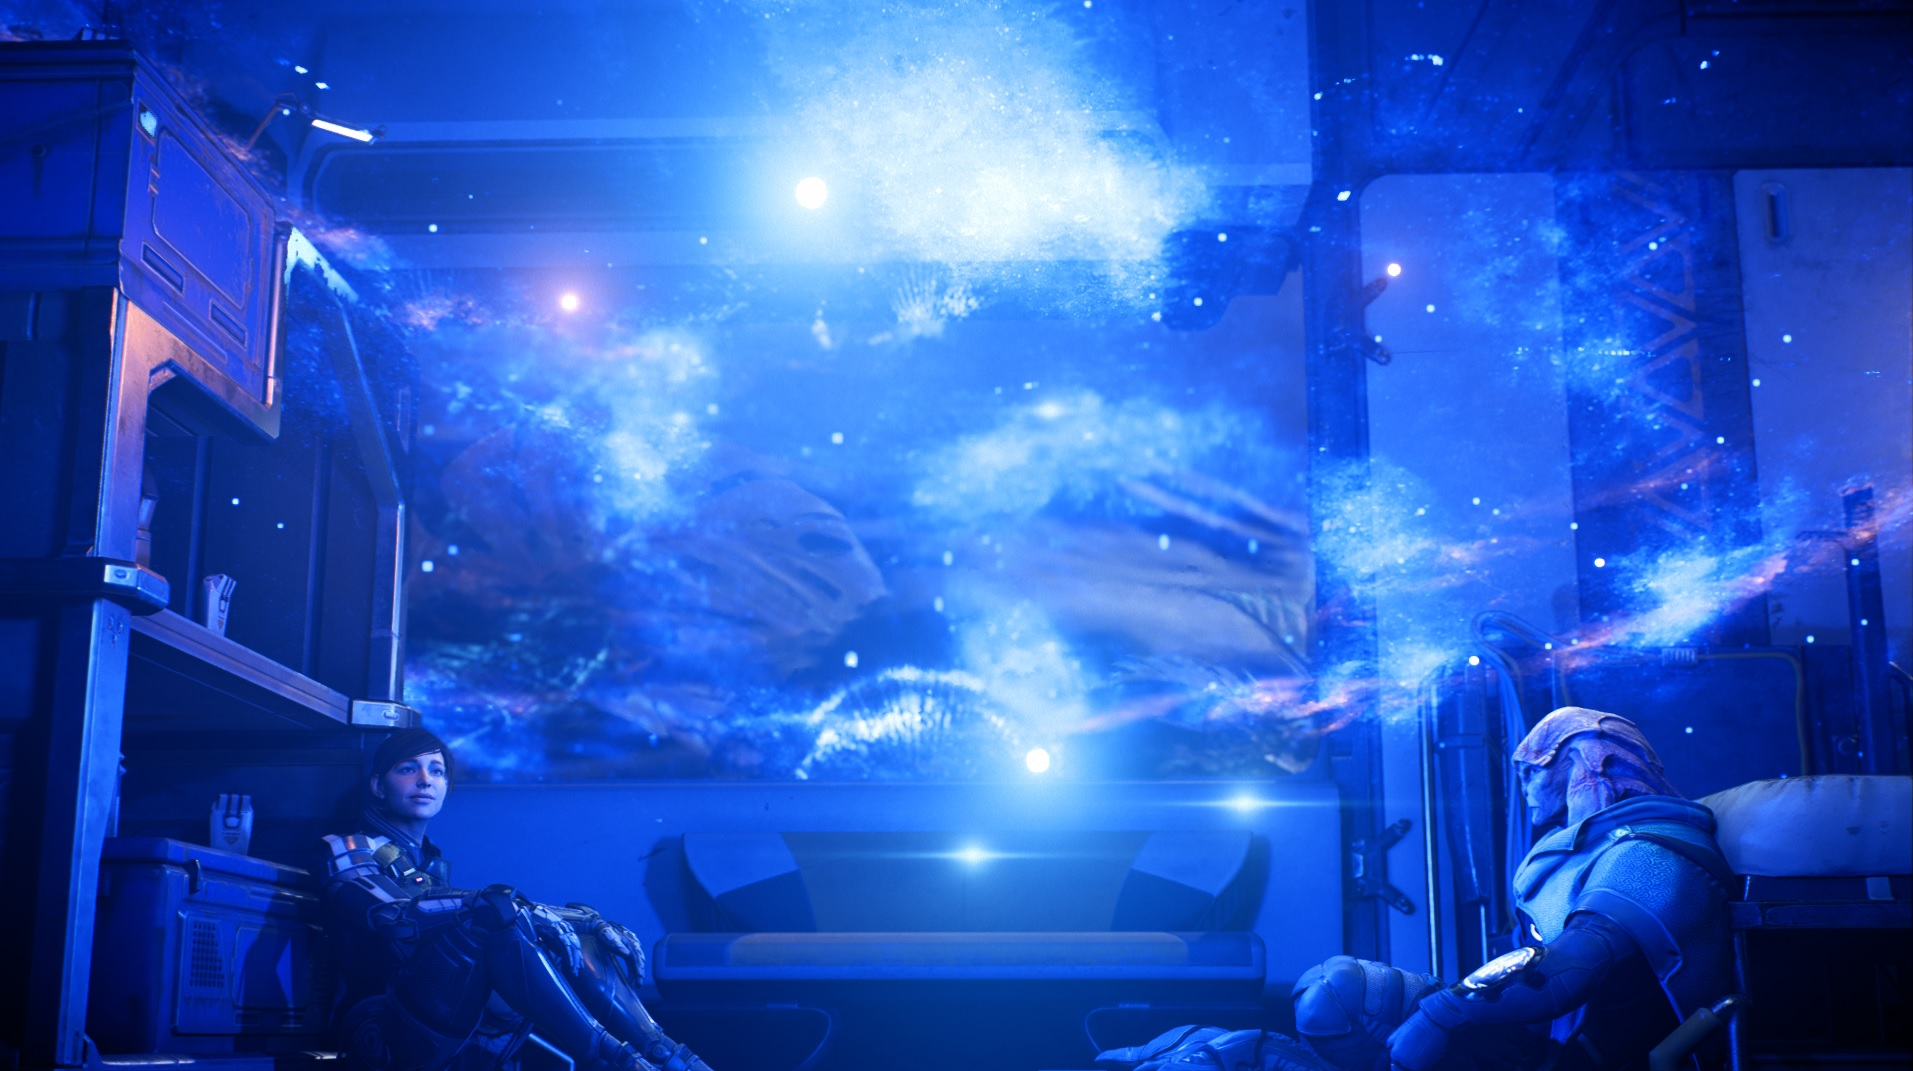 Mass Effect Andromeda Jaal Ryder Chilling